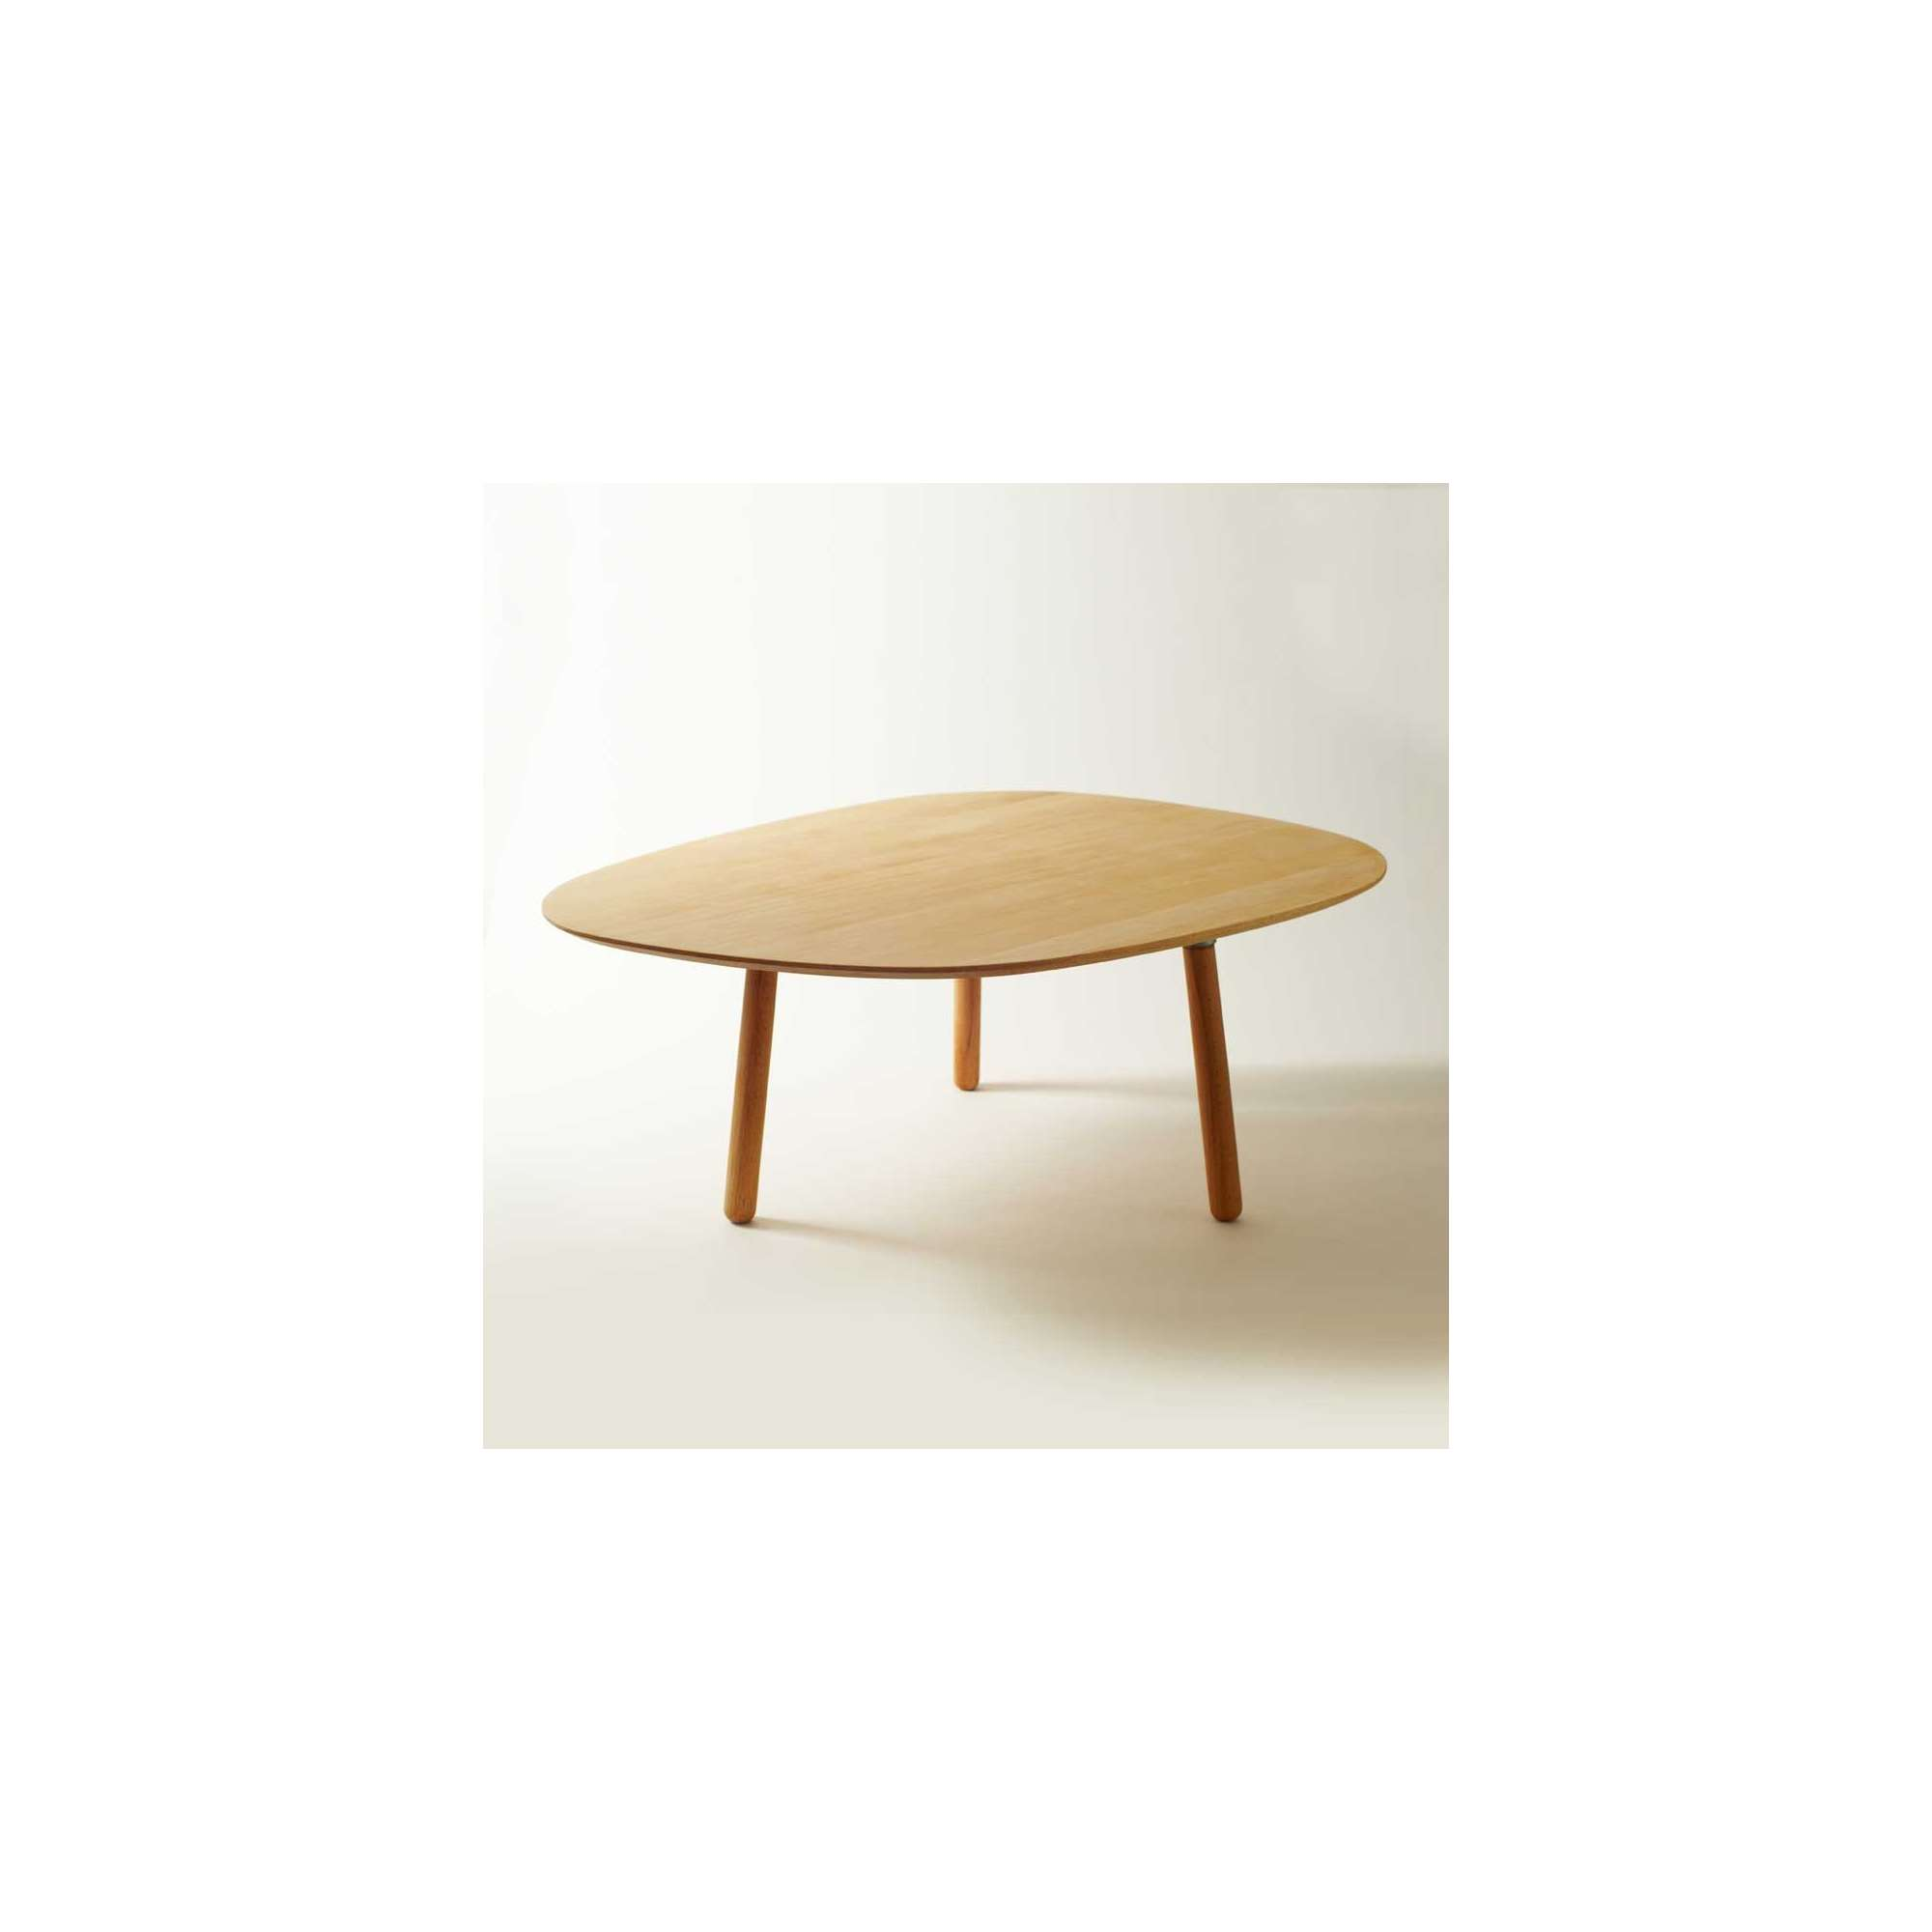 Grande table basse salon - Grande table basse de salon ...